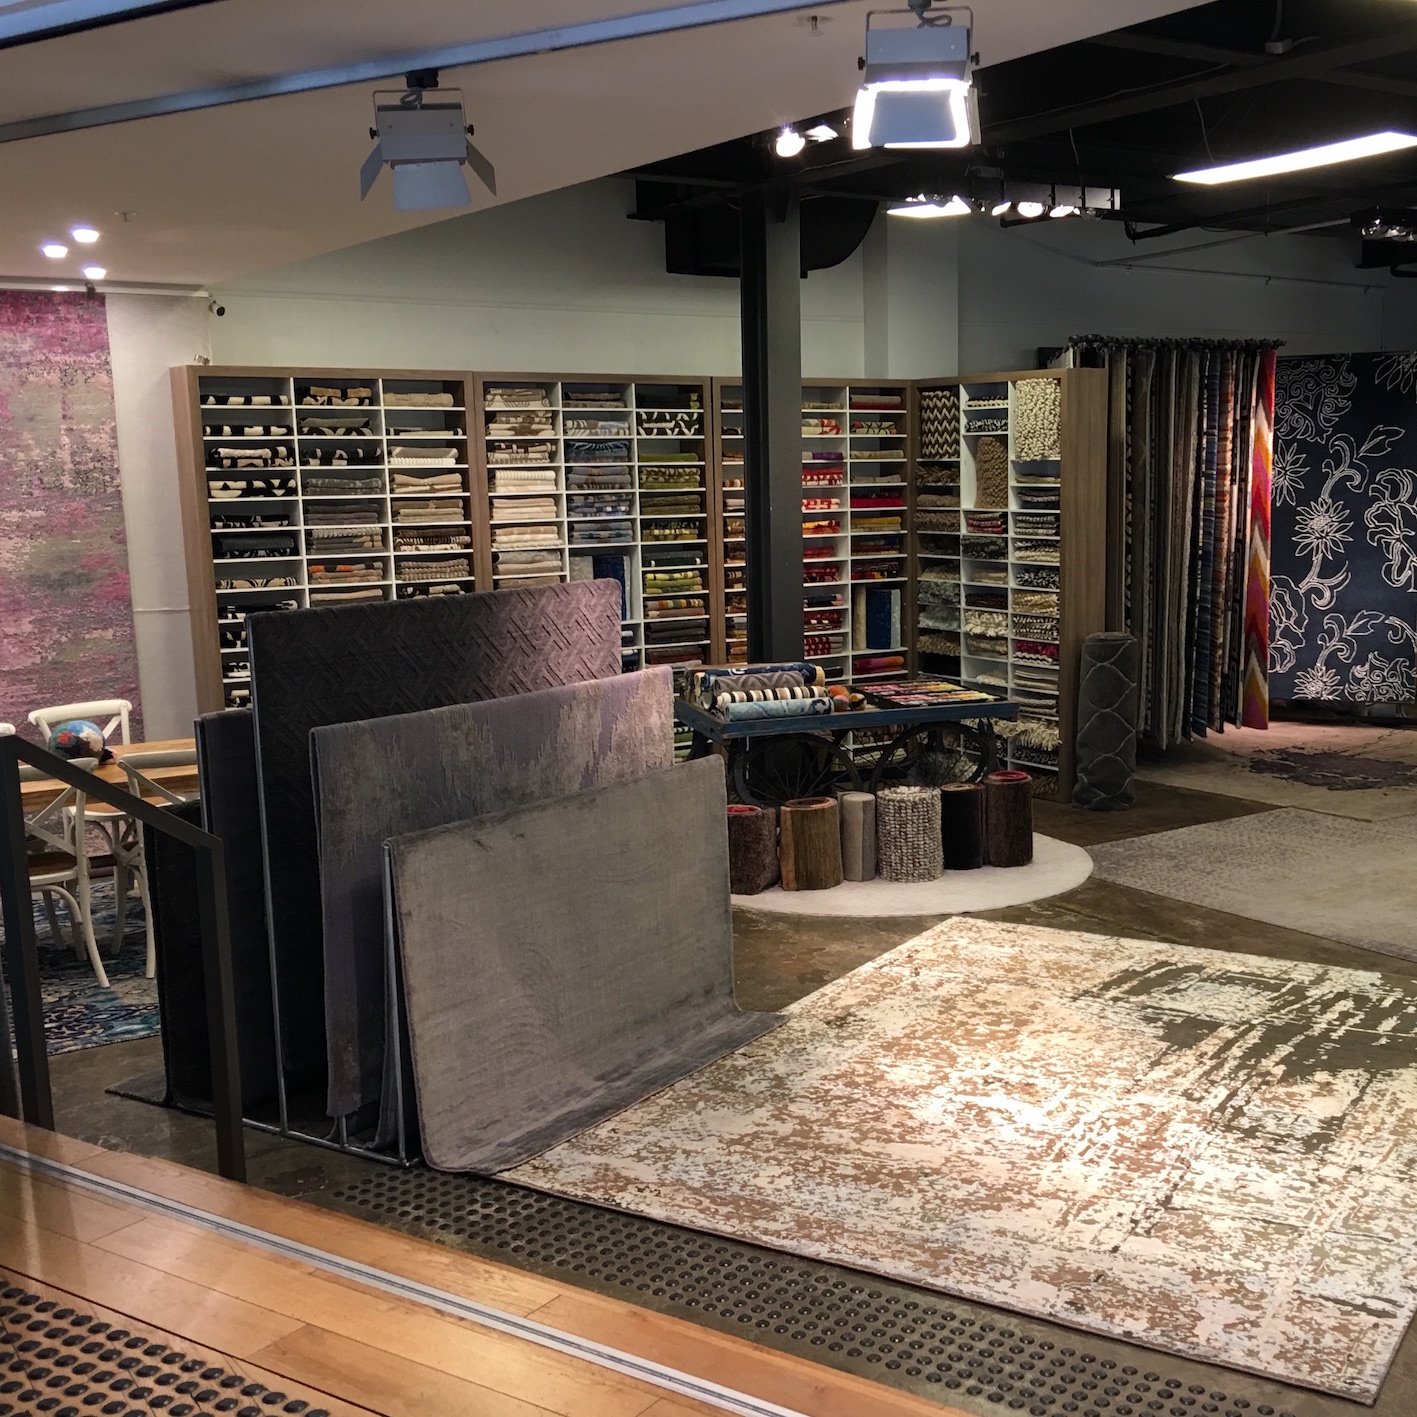 Areas Within Driving Distance To Our Designer Rug Showroom Darlington Redfern Moore Park Eveleigh Zetland Alexandria Rosebery Kensington